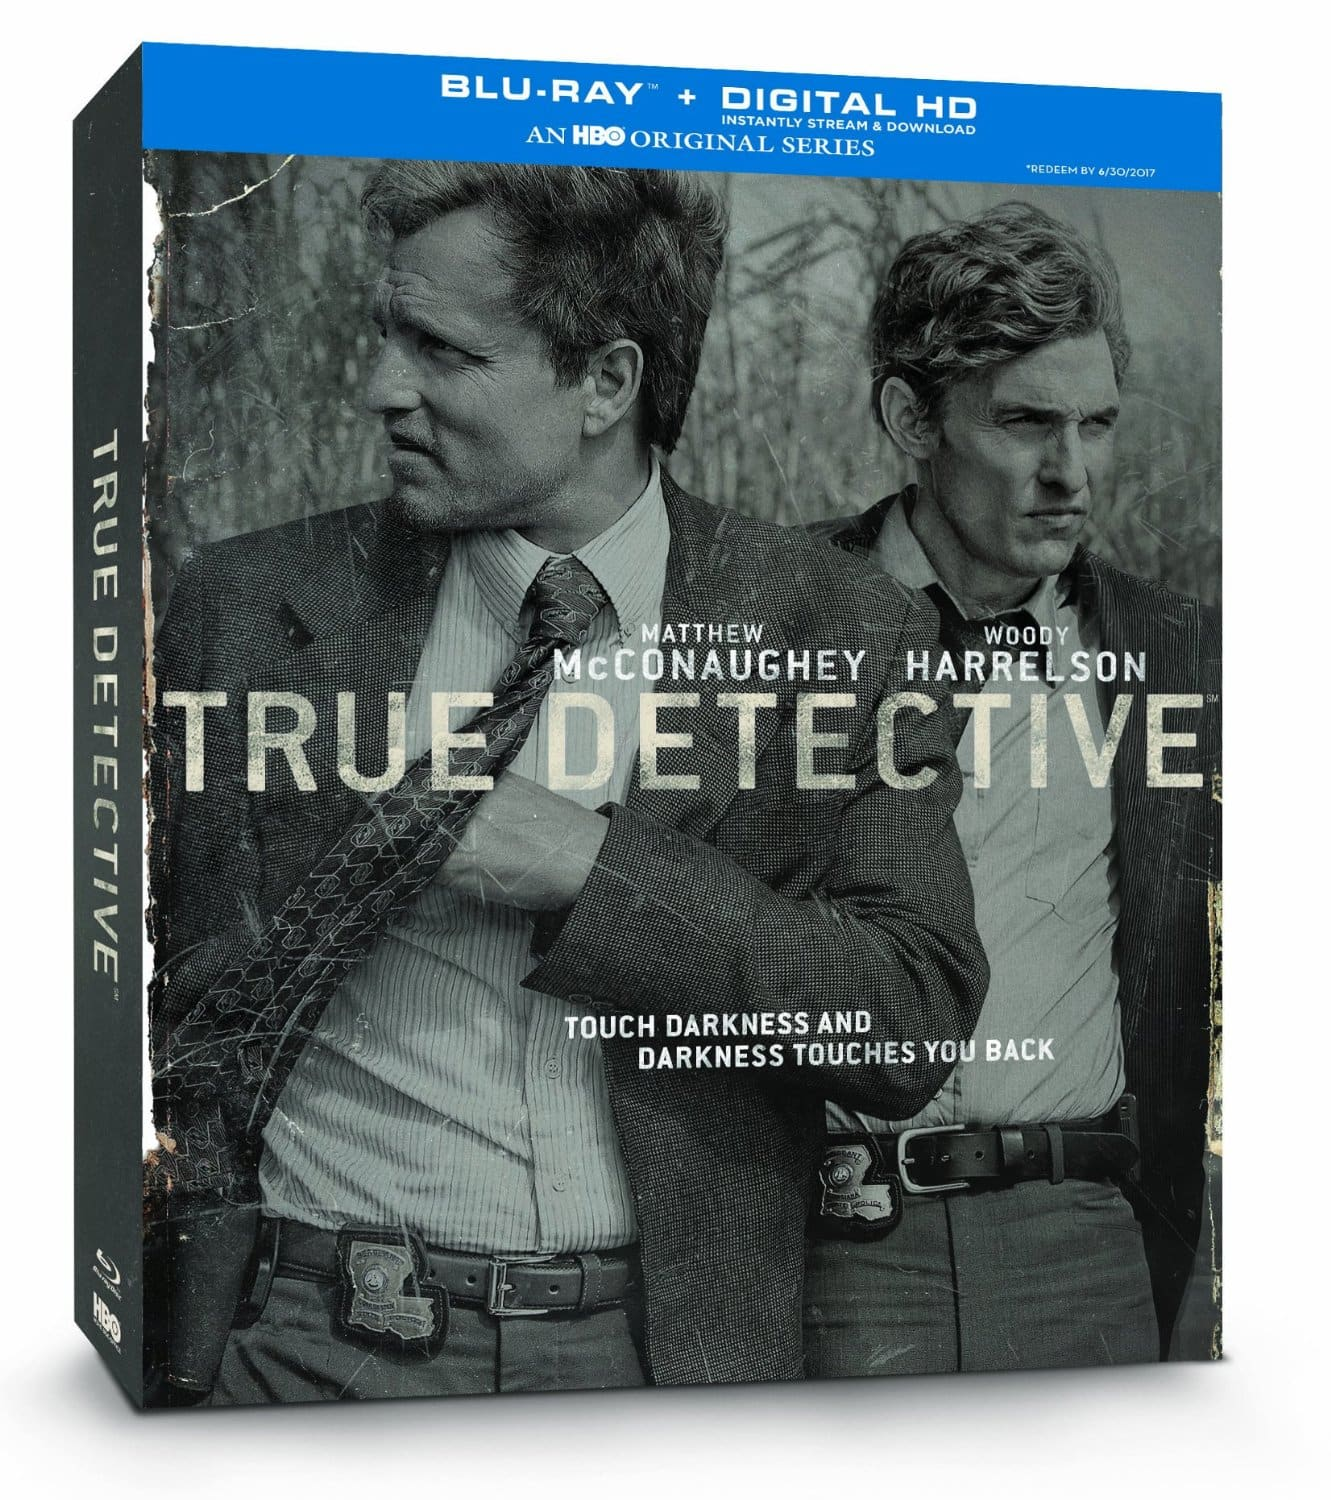 True Detective: The Complete First Season (Blu-ray) $9.99 + Free Shipping @ BB